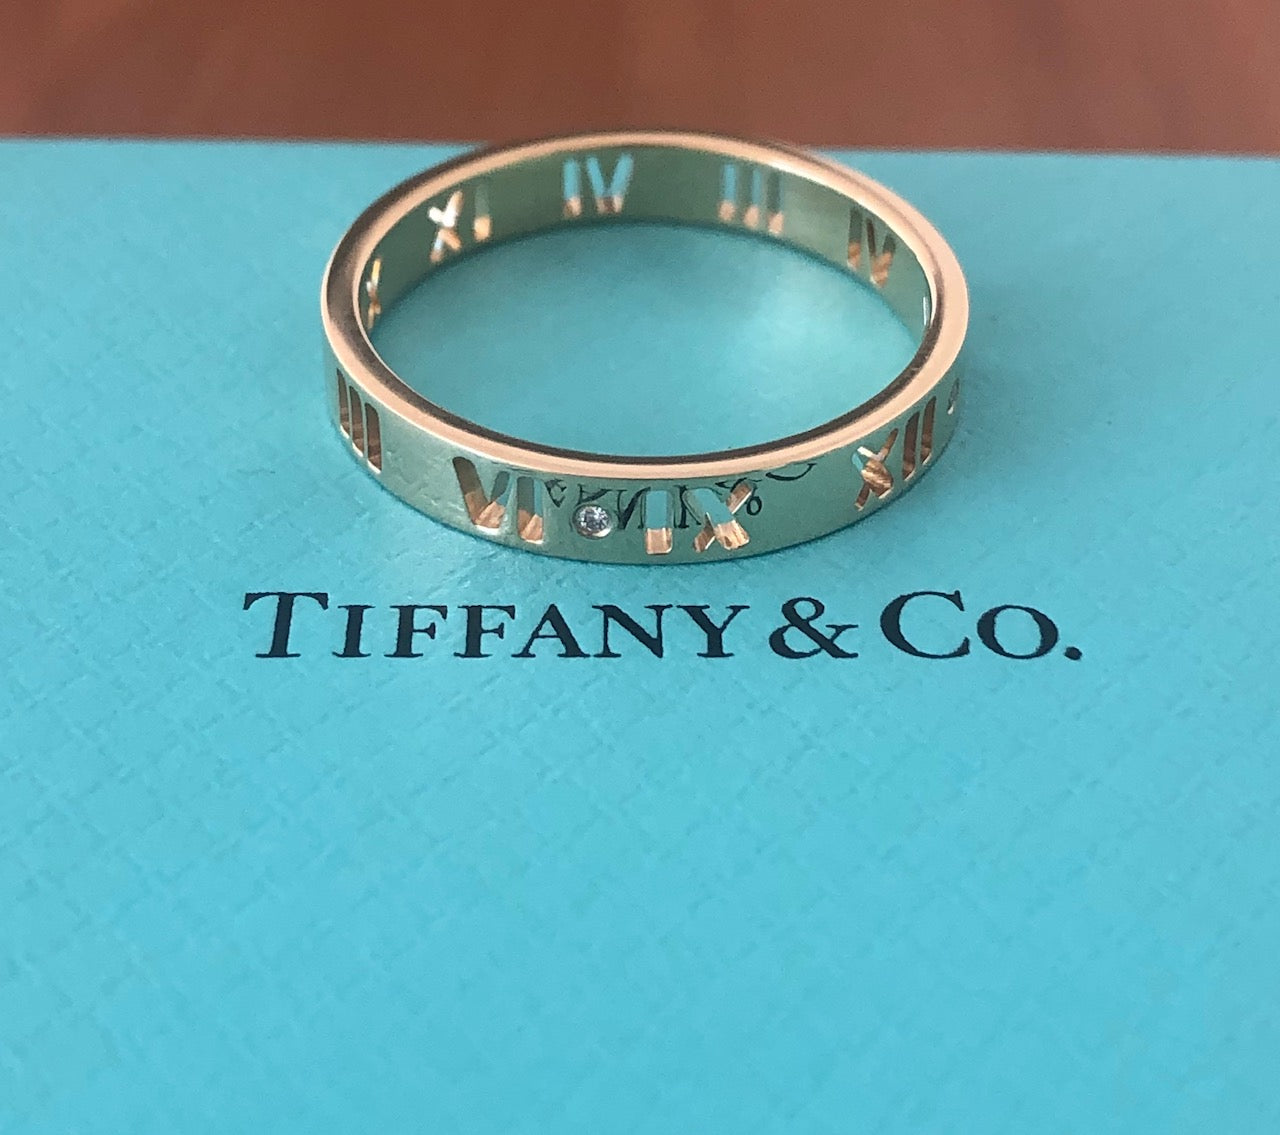 Tiffany & Co. Pierced Atlas Diamond Ring in 18ct Yellow Gold Size 9.5